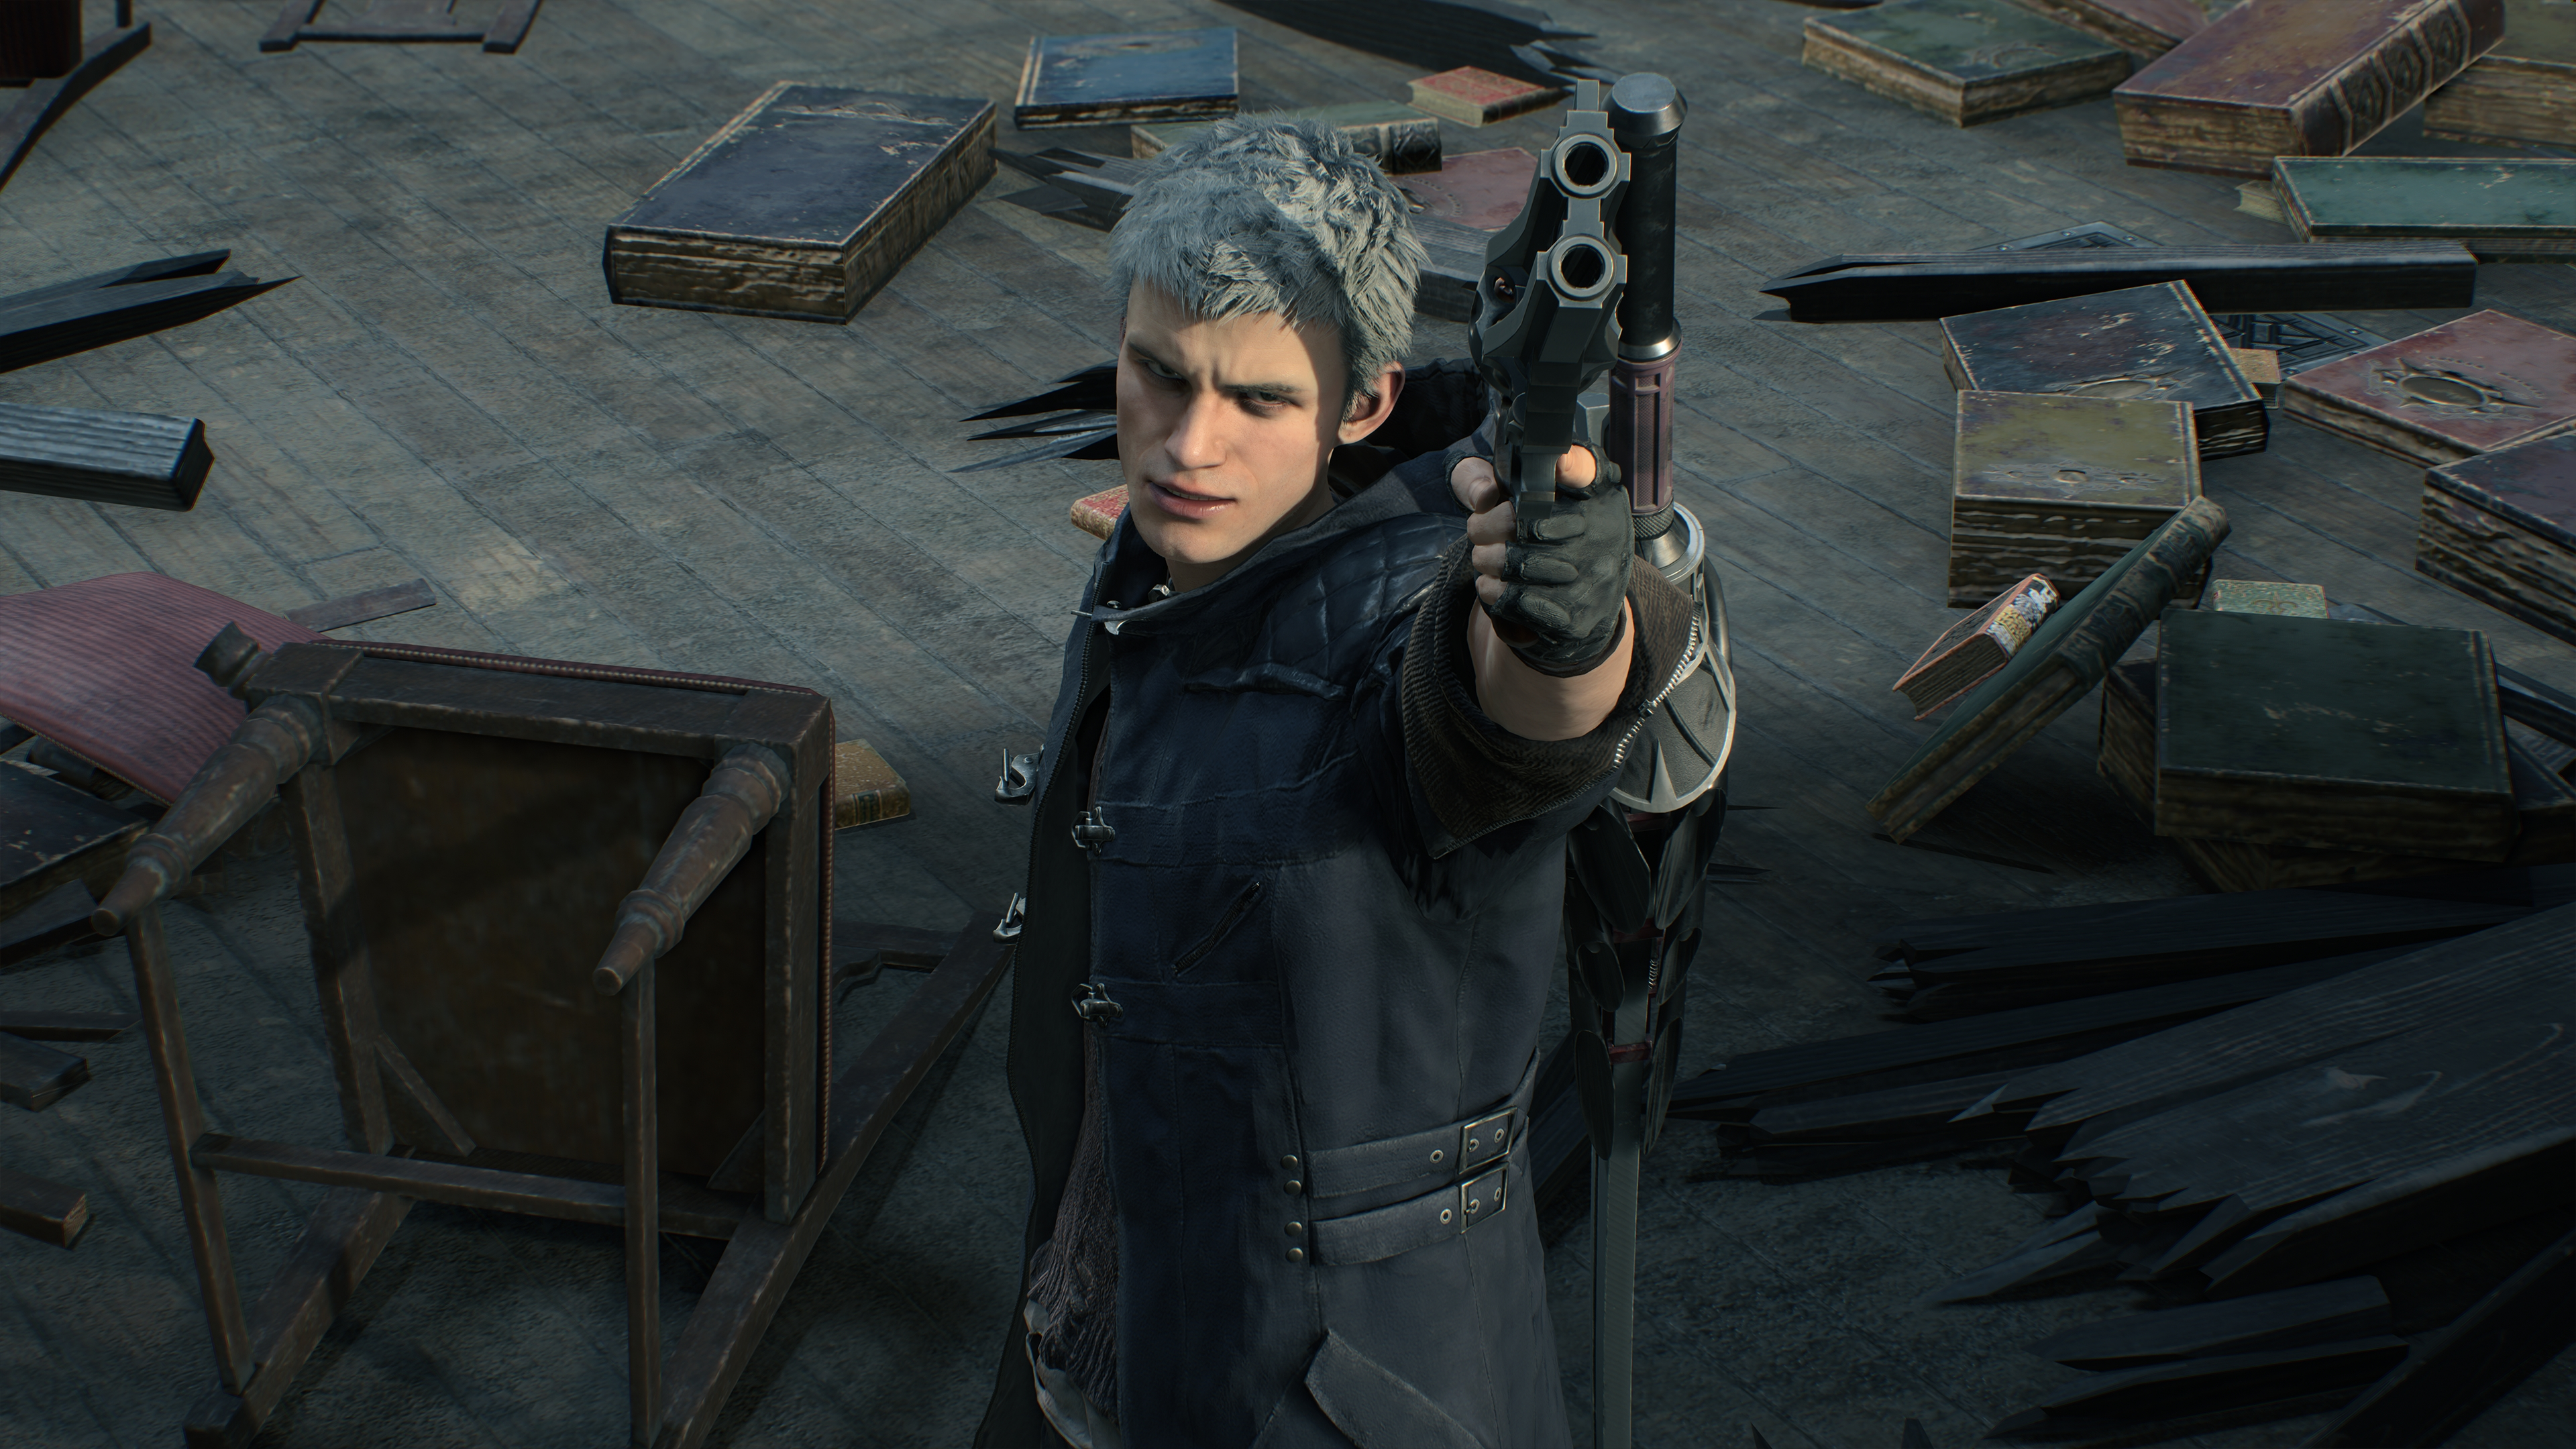 Devil May Cry 5 4k Ultra Hd Wallpaper Background Image 3840x2160